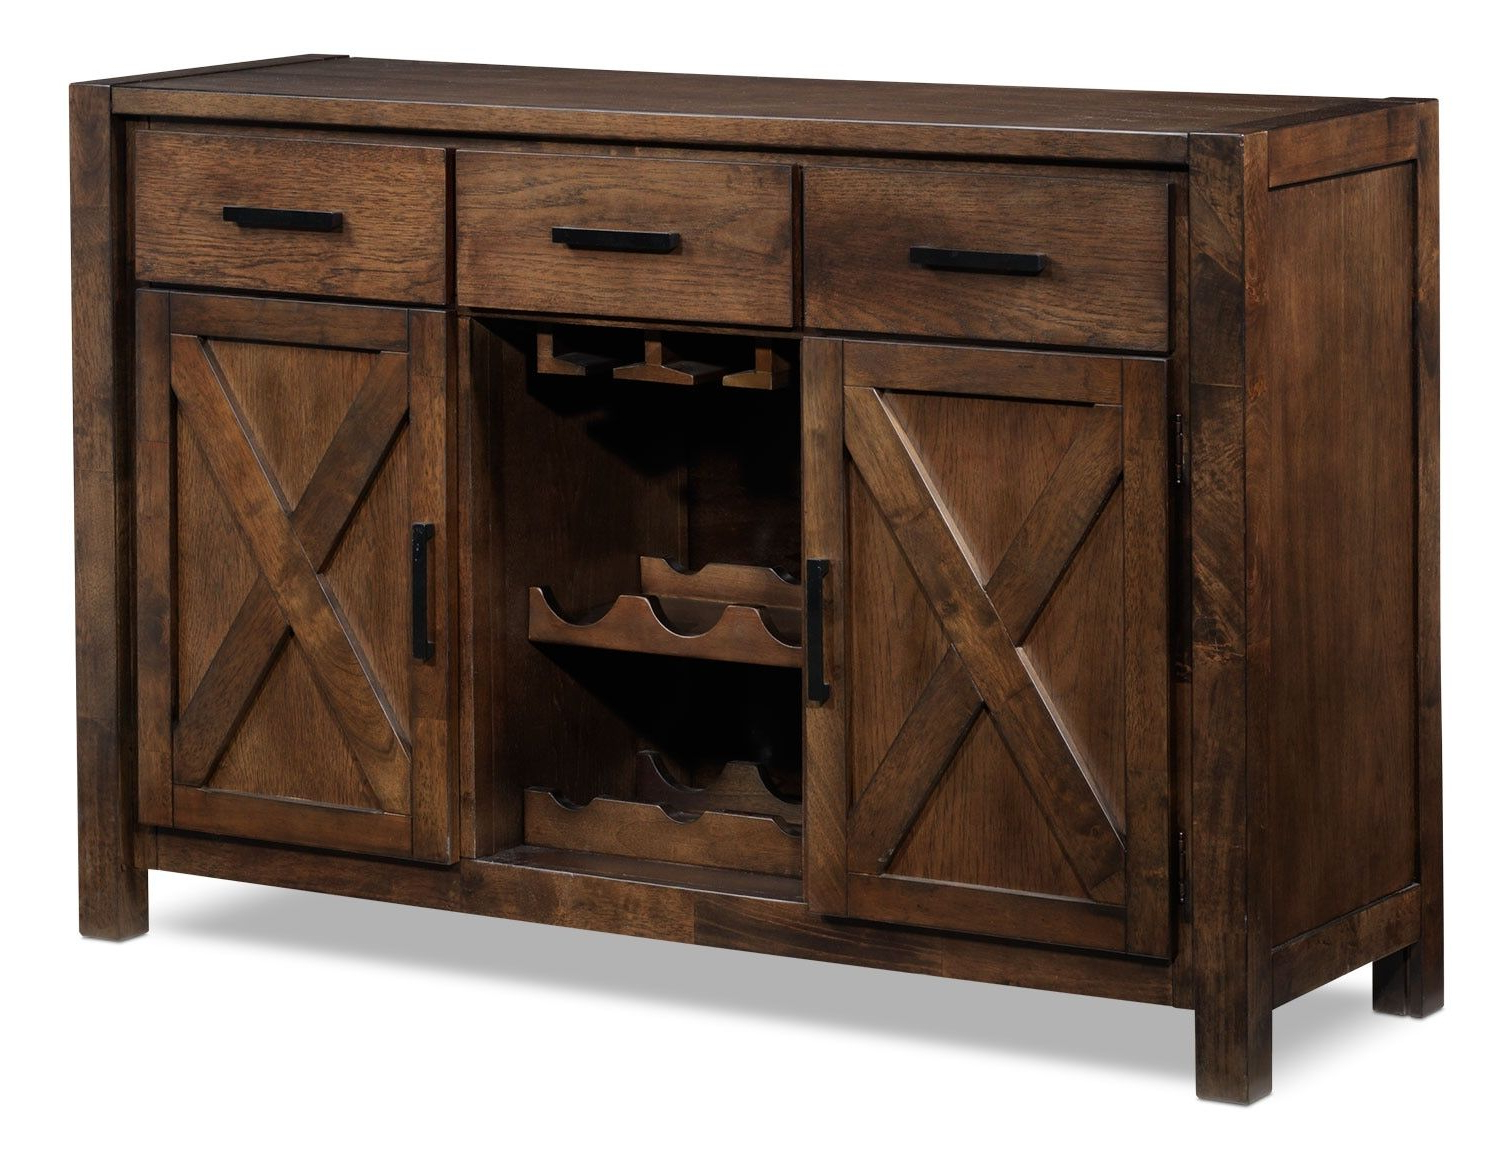 Dining Regarding Well Known Chaffins Sideboards (View 9 of 20)